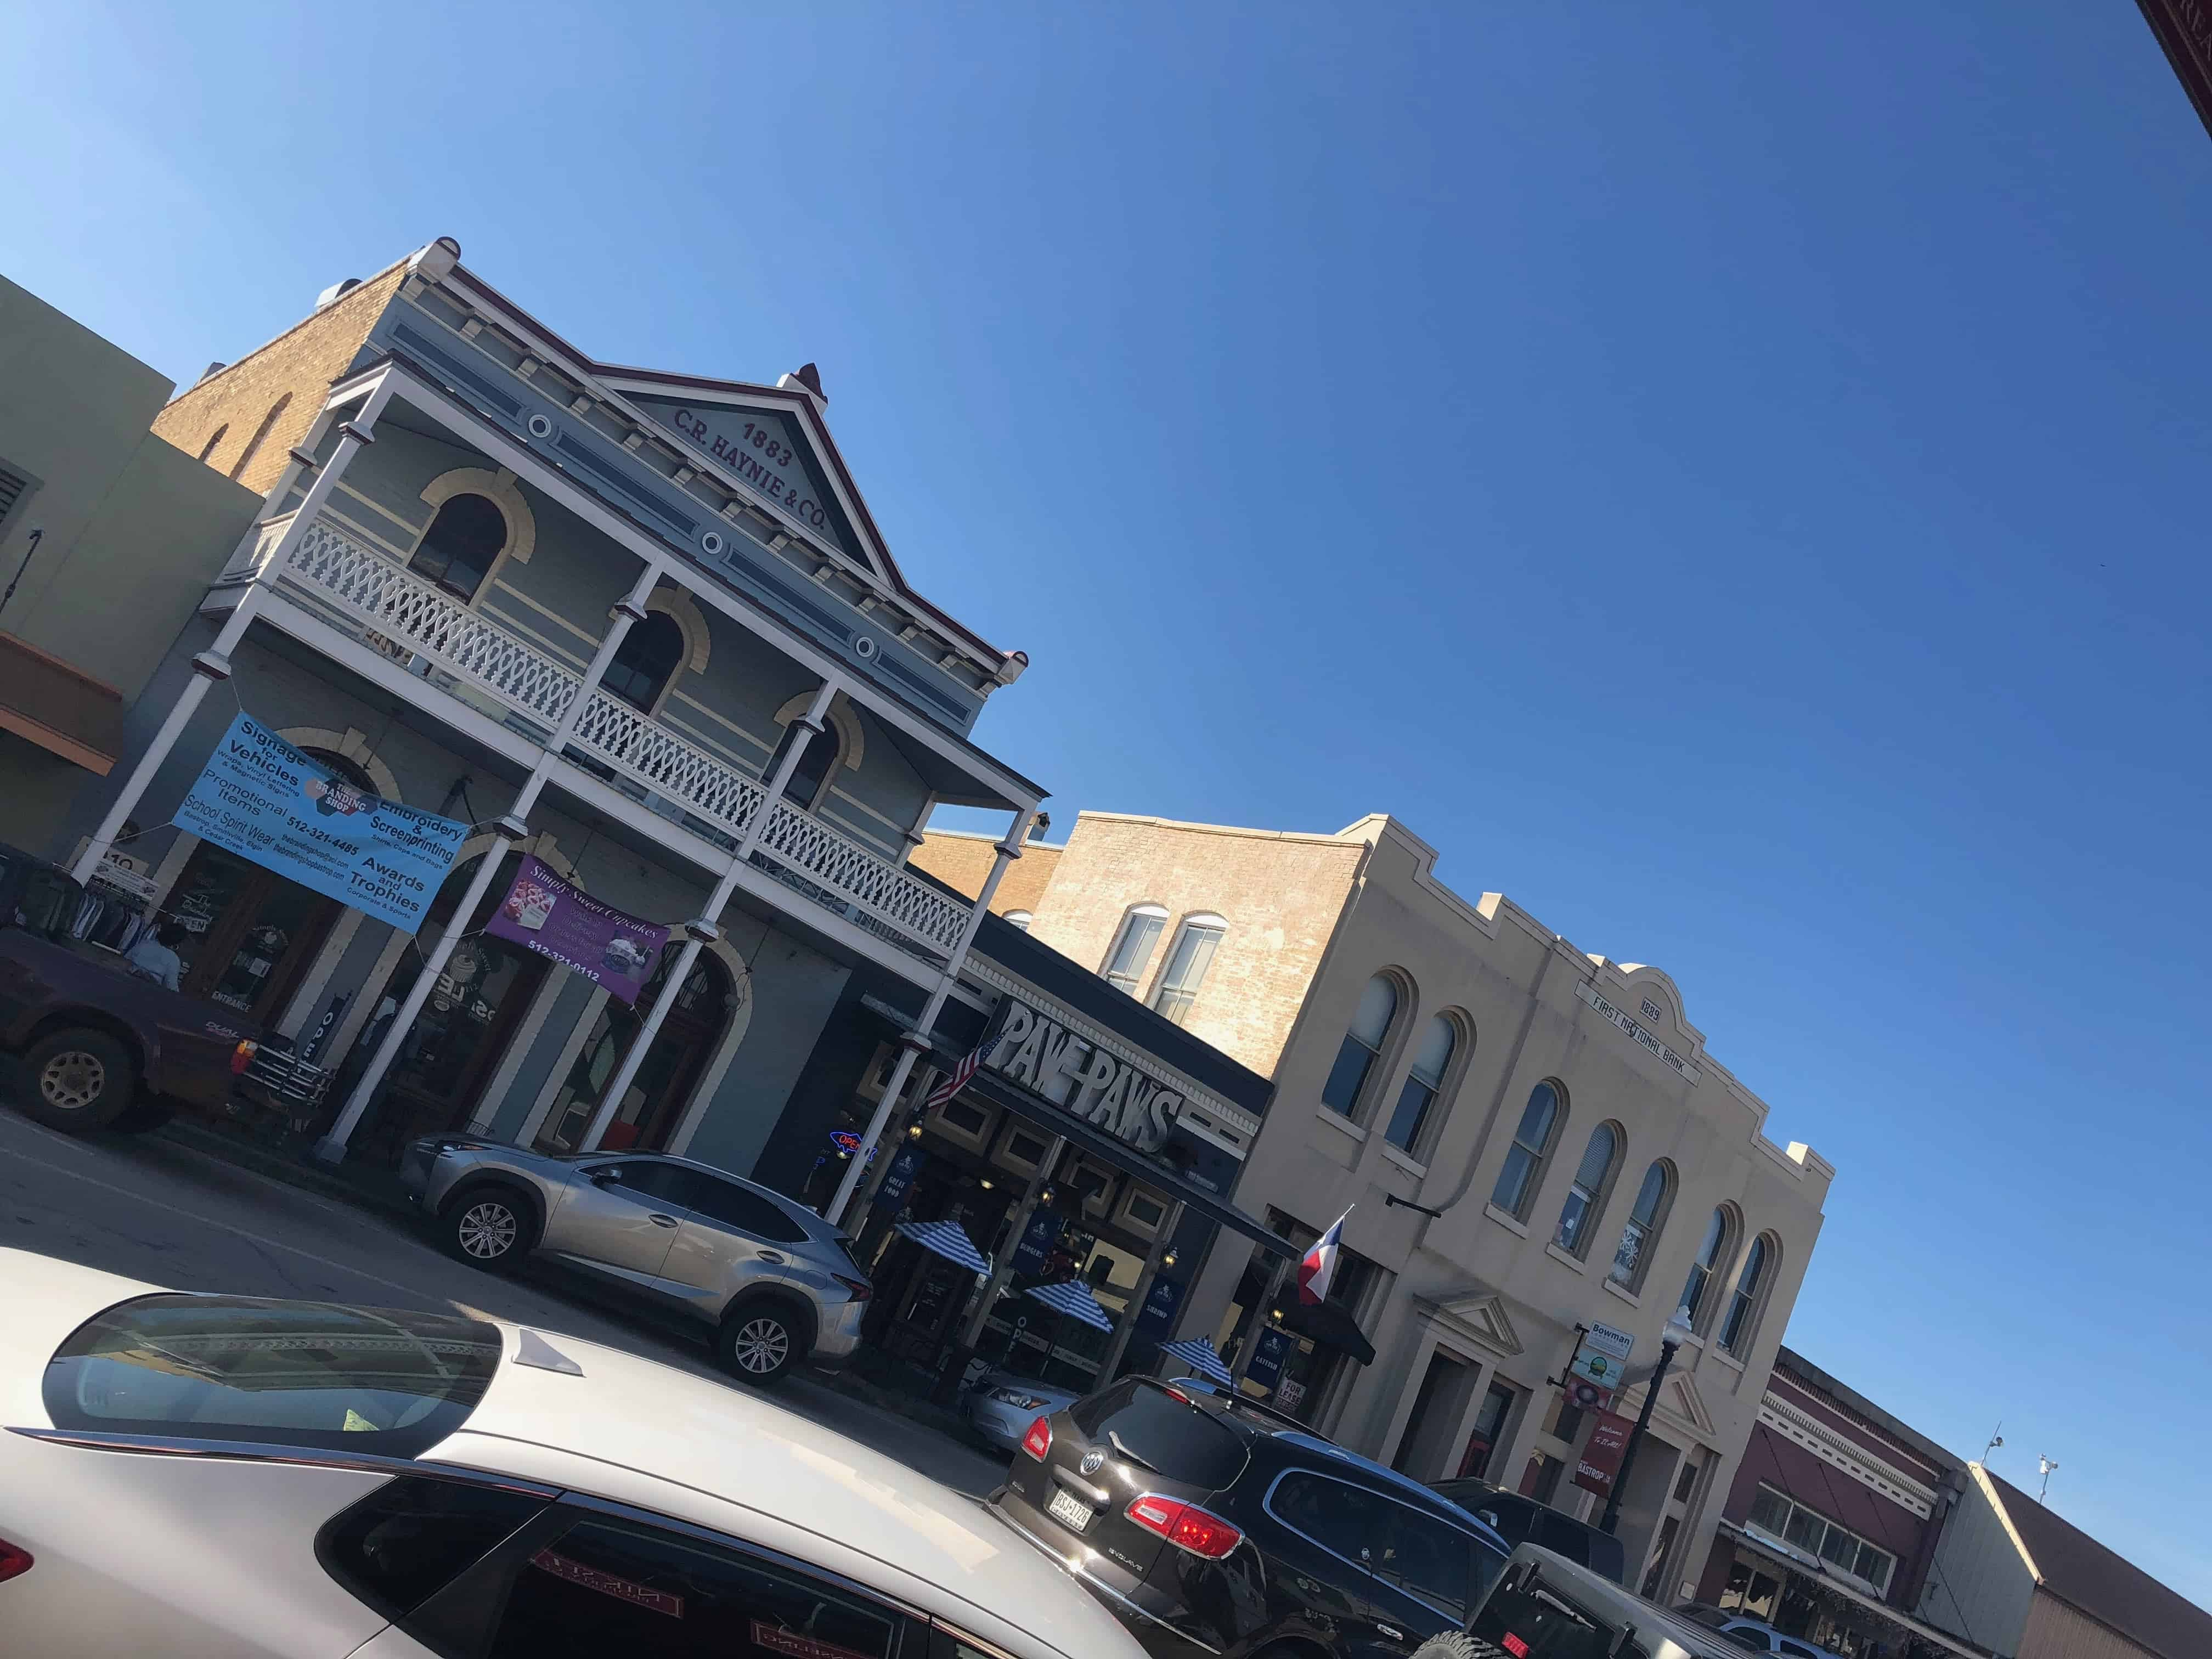 Named as one of the landmark Texas Main Streets, Downtown Bastrop accomodates a large group of homes and buildings that is listed on National Historic Register.